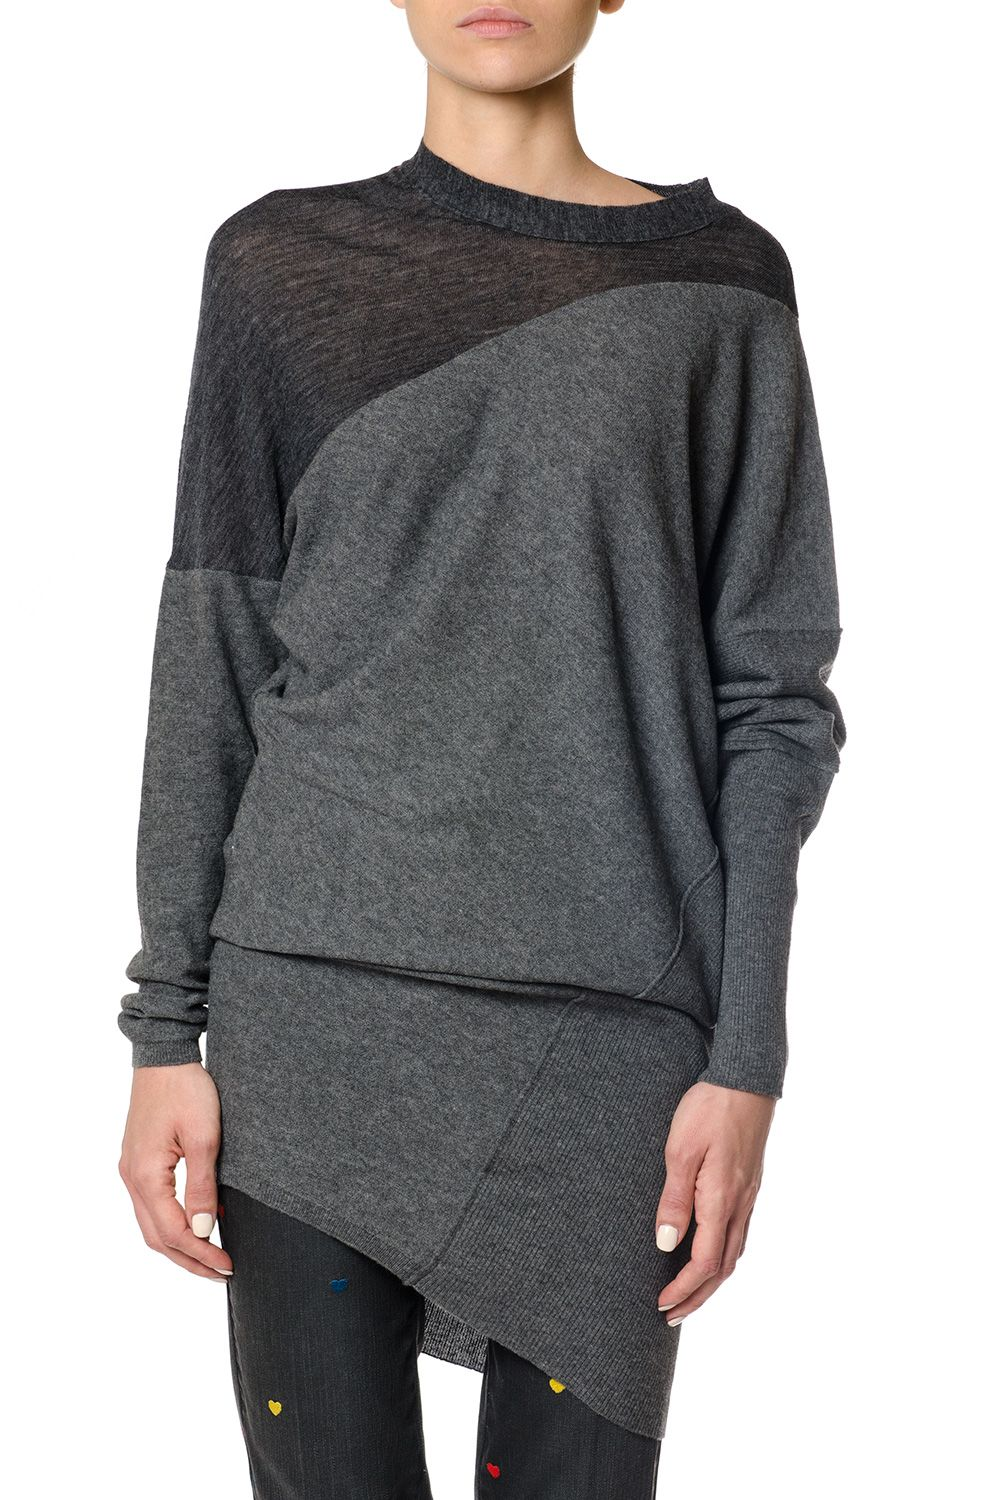 Stella McCartney Wool Blend Alpaca Asymmetric Top